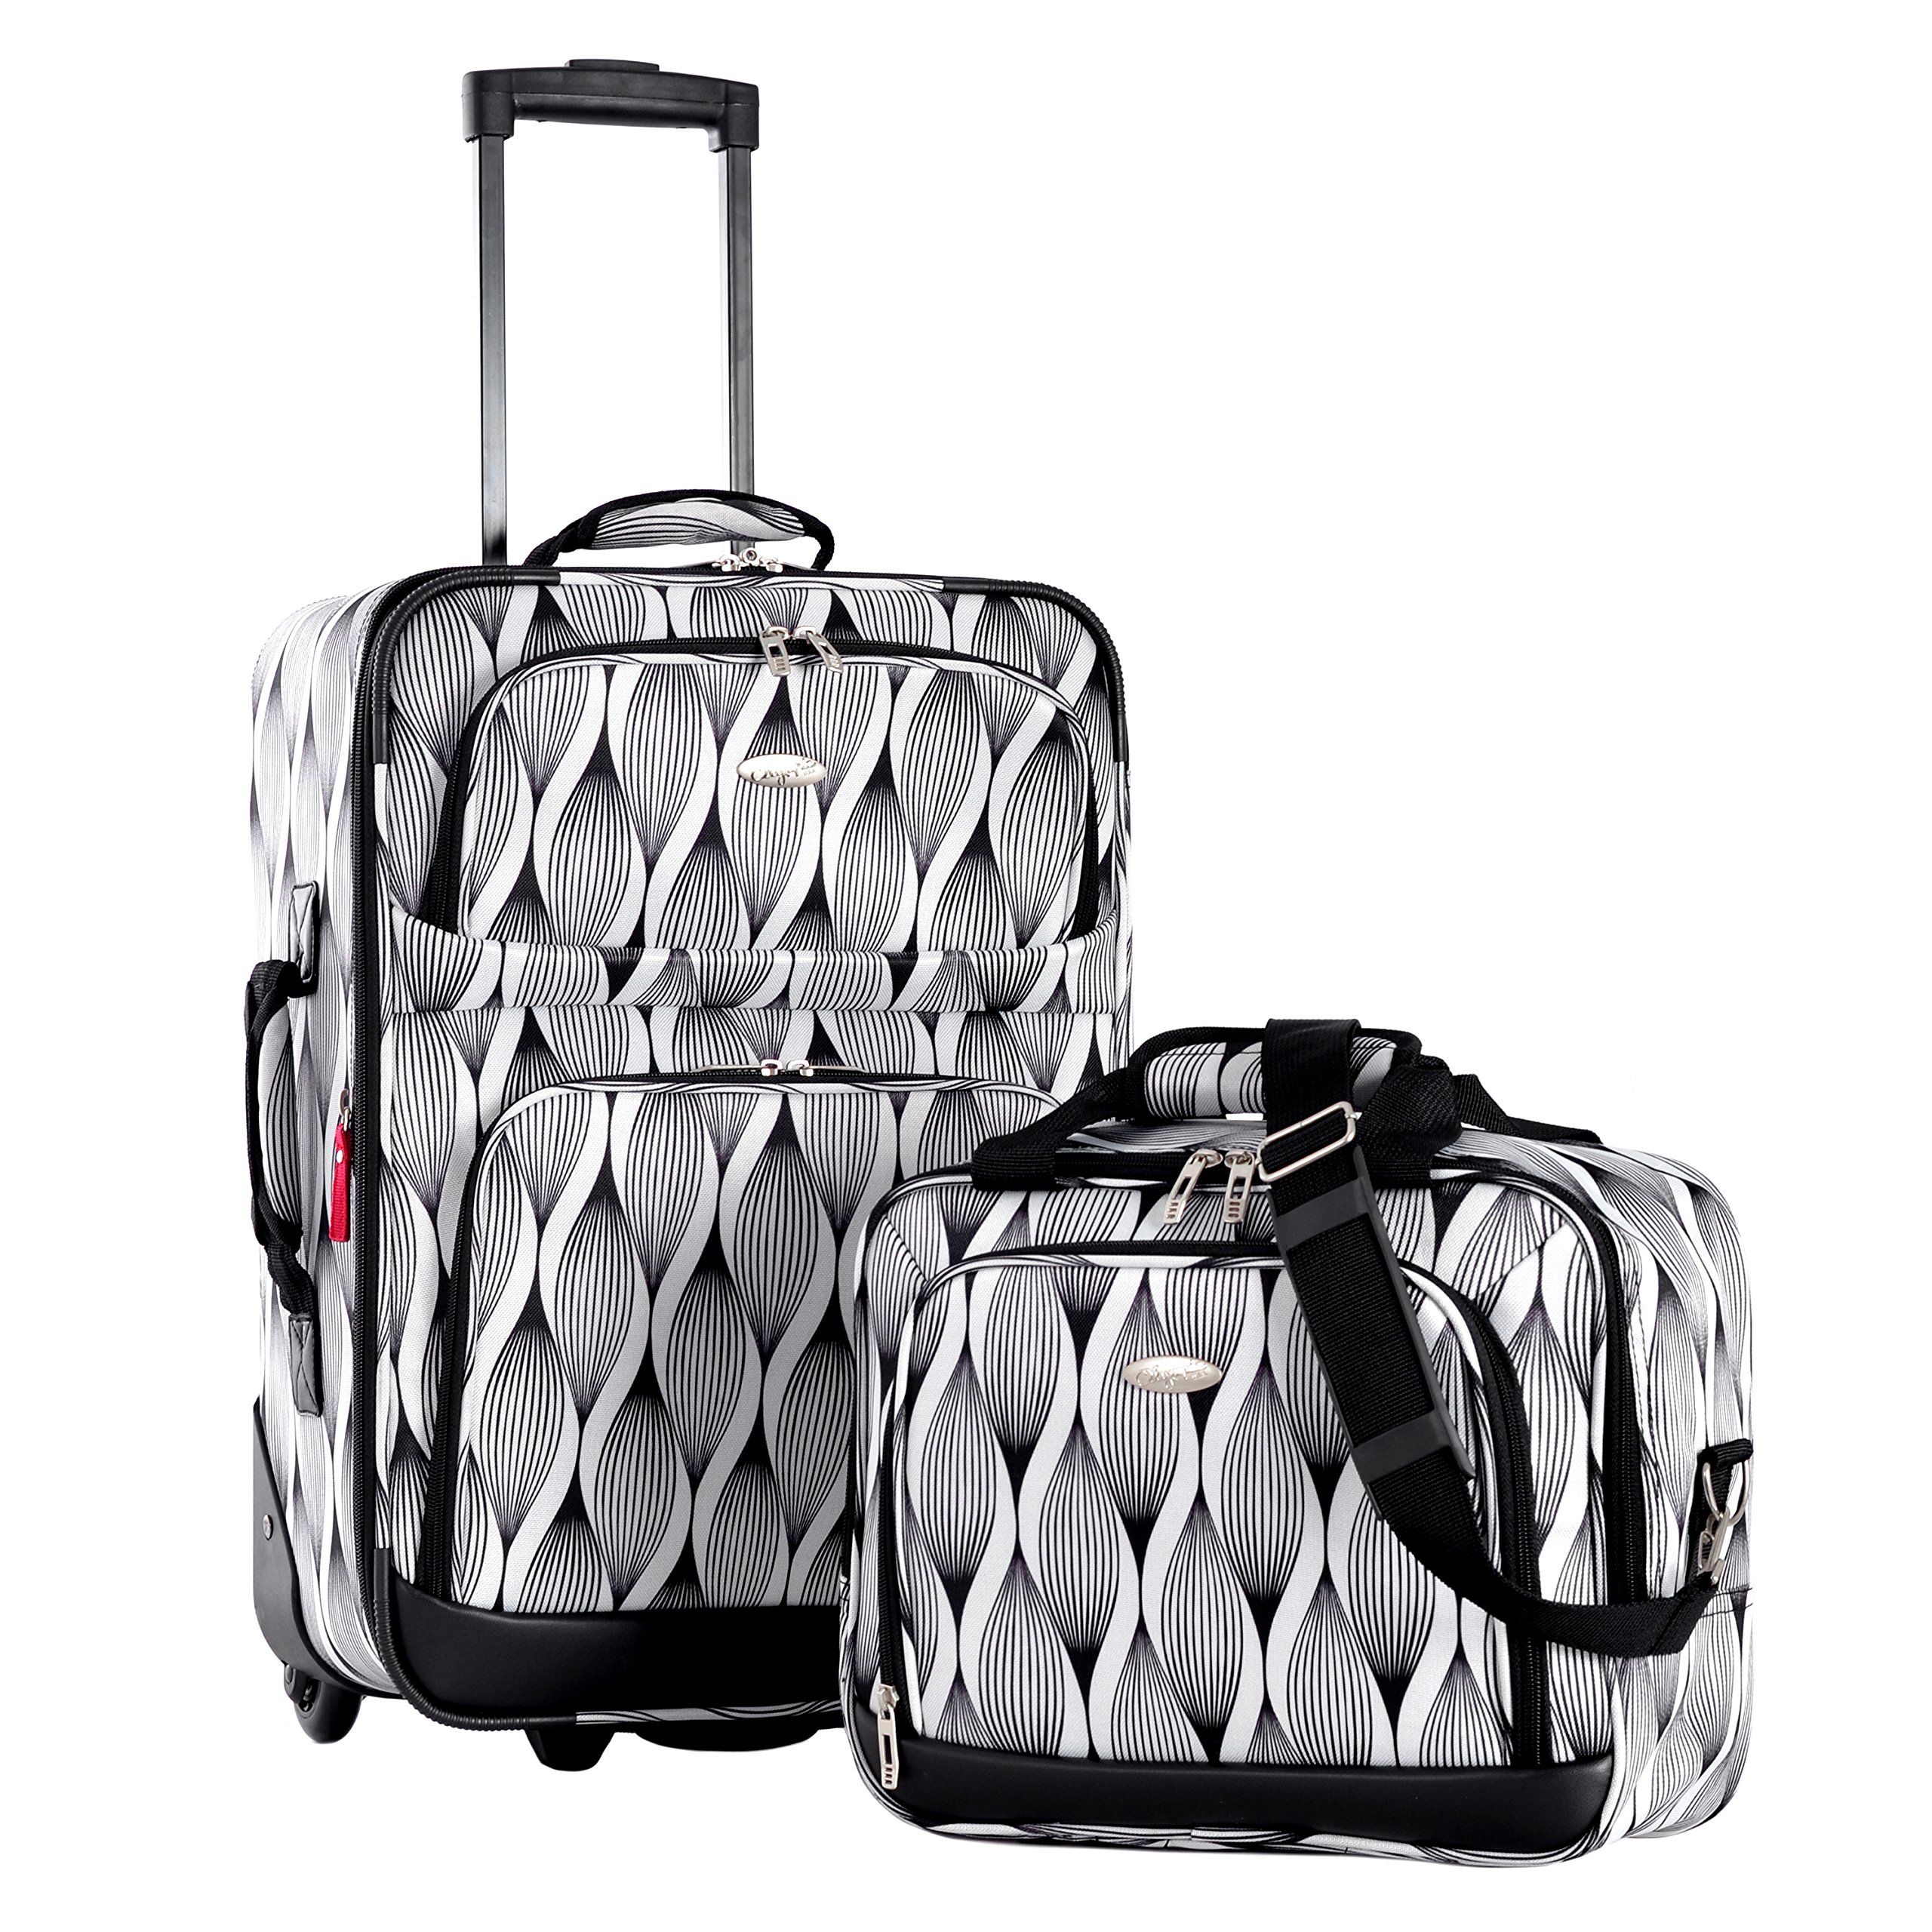 Olympia Let's Travel 2pc Carry-on Luggage Set, Spiral by Olympia